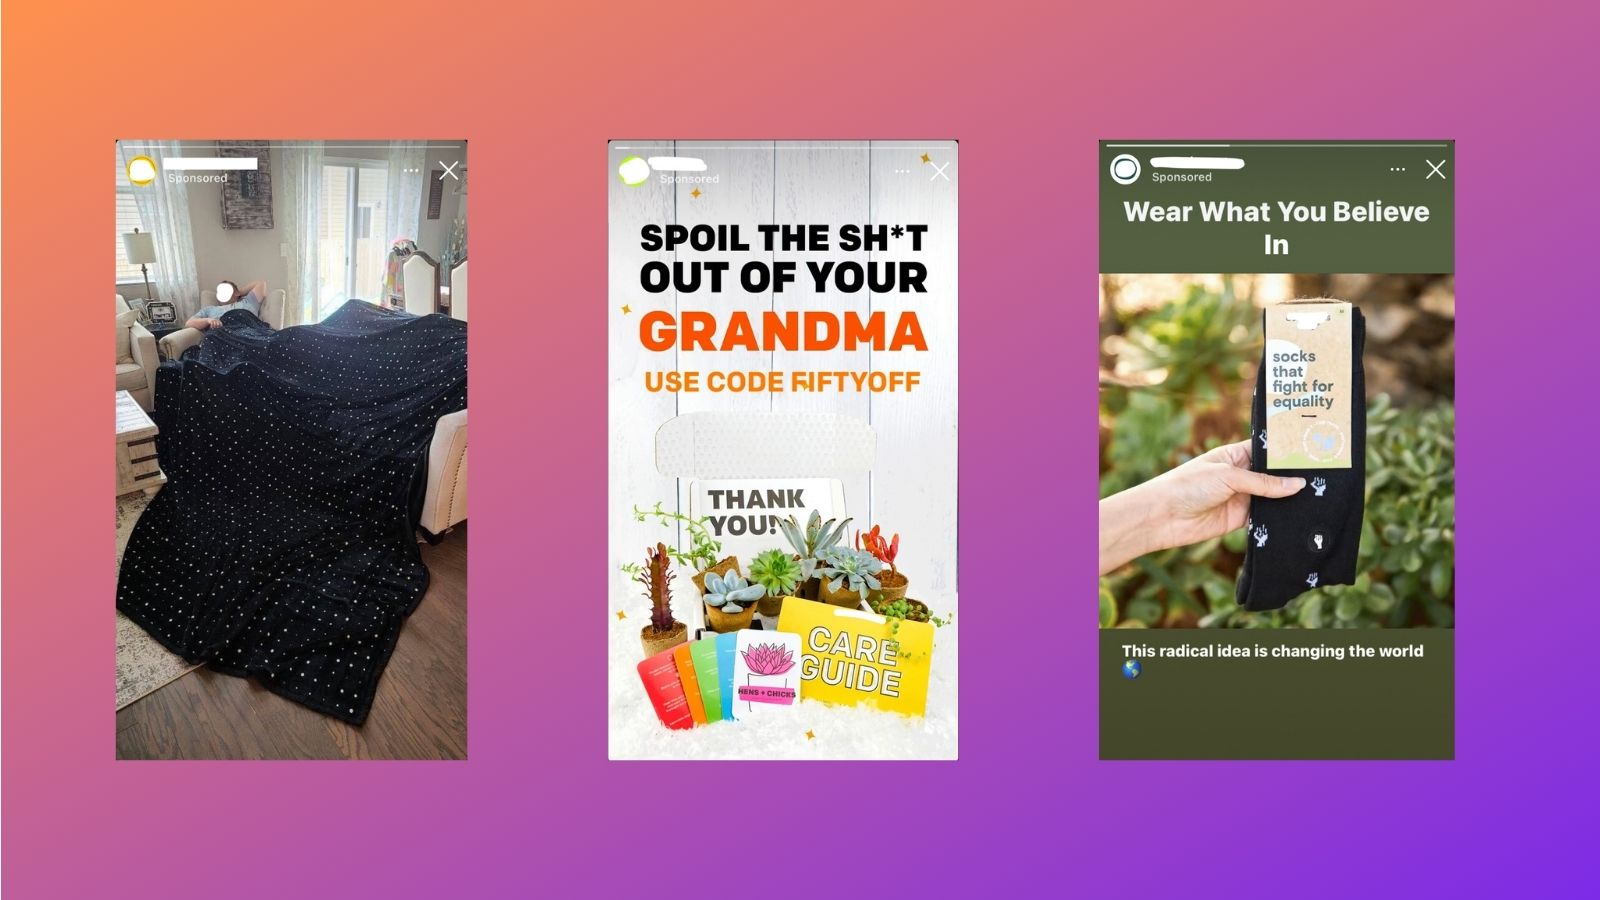 Three Instagram Stories advertisements for a big blanket, a succulent subscription box, and socks that fight racial injustice